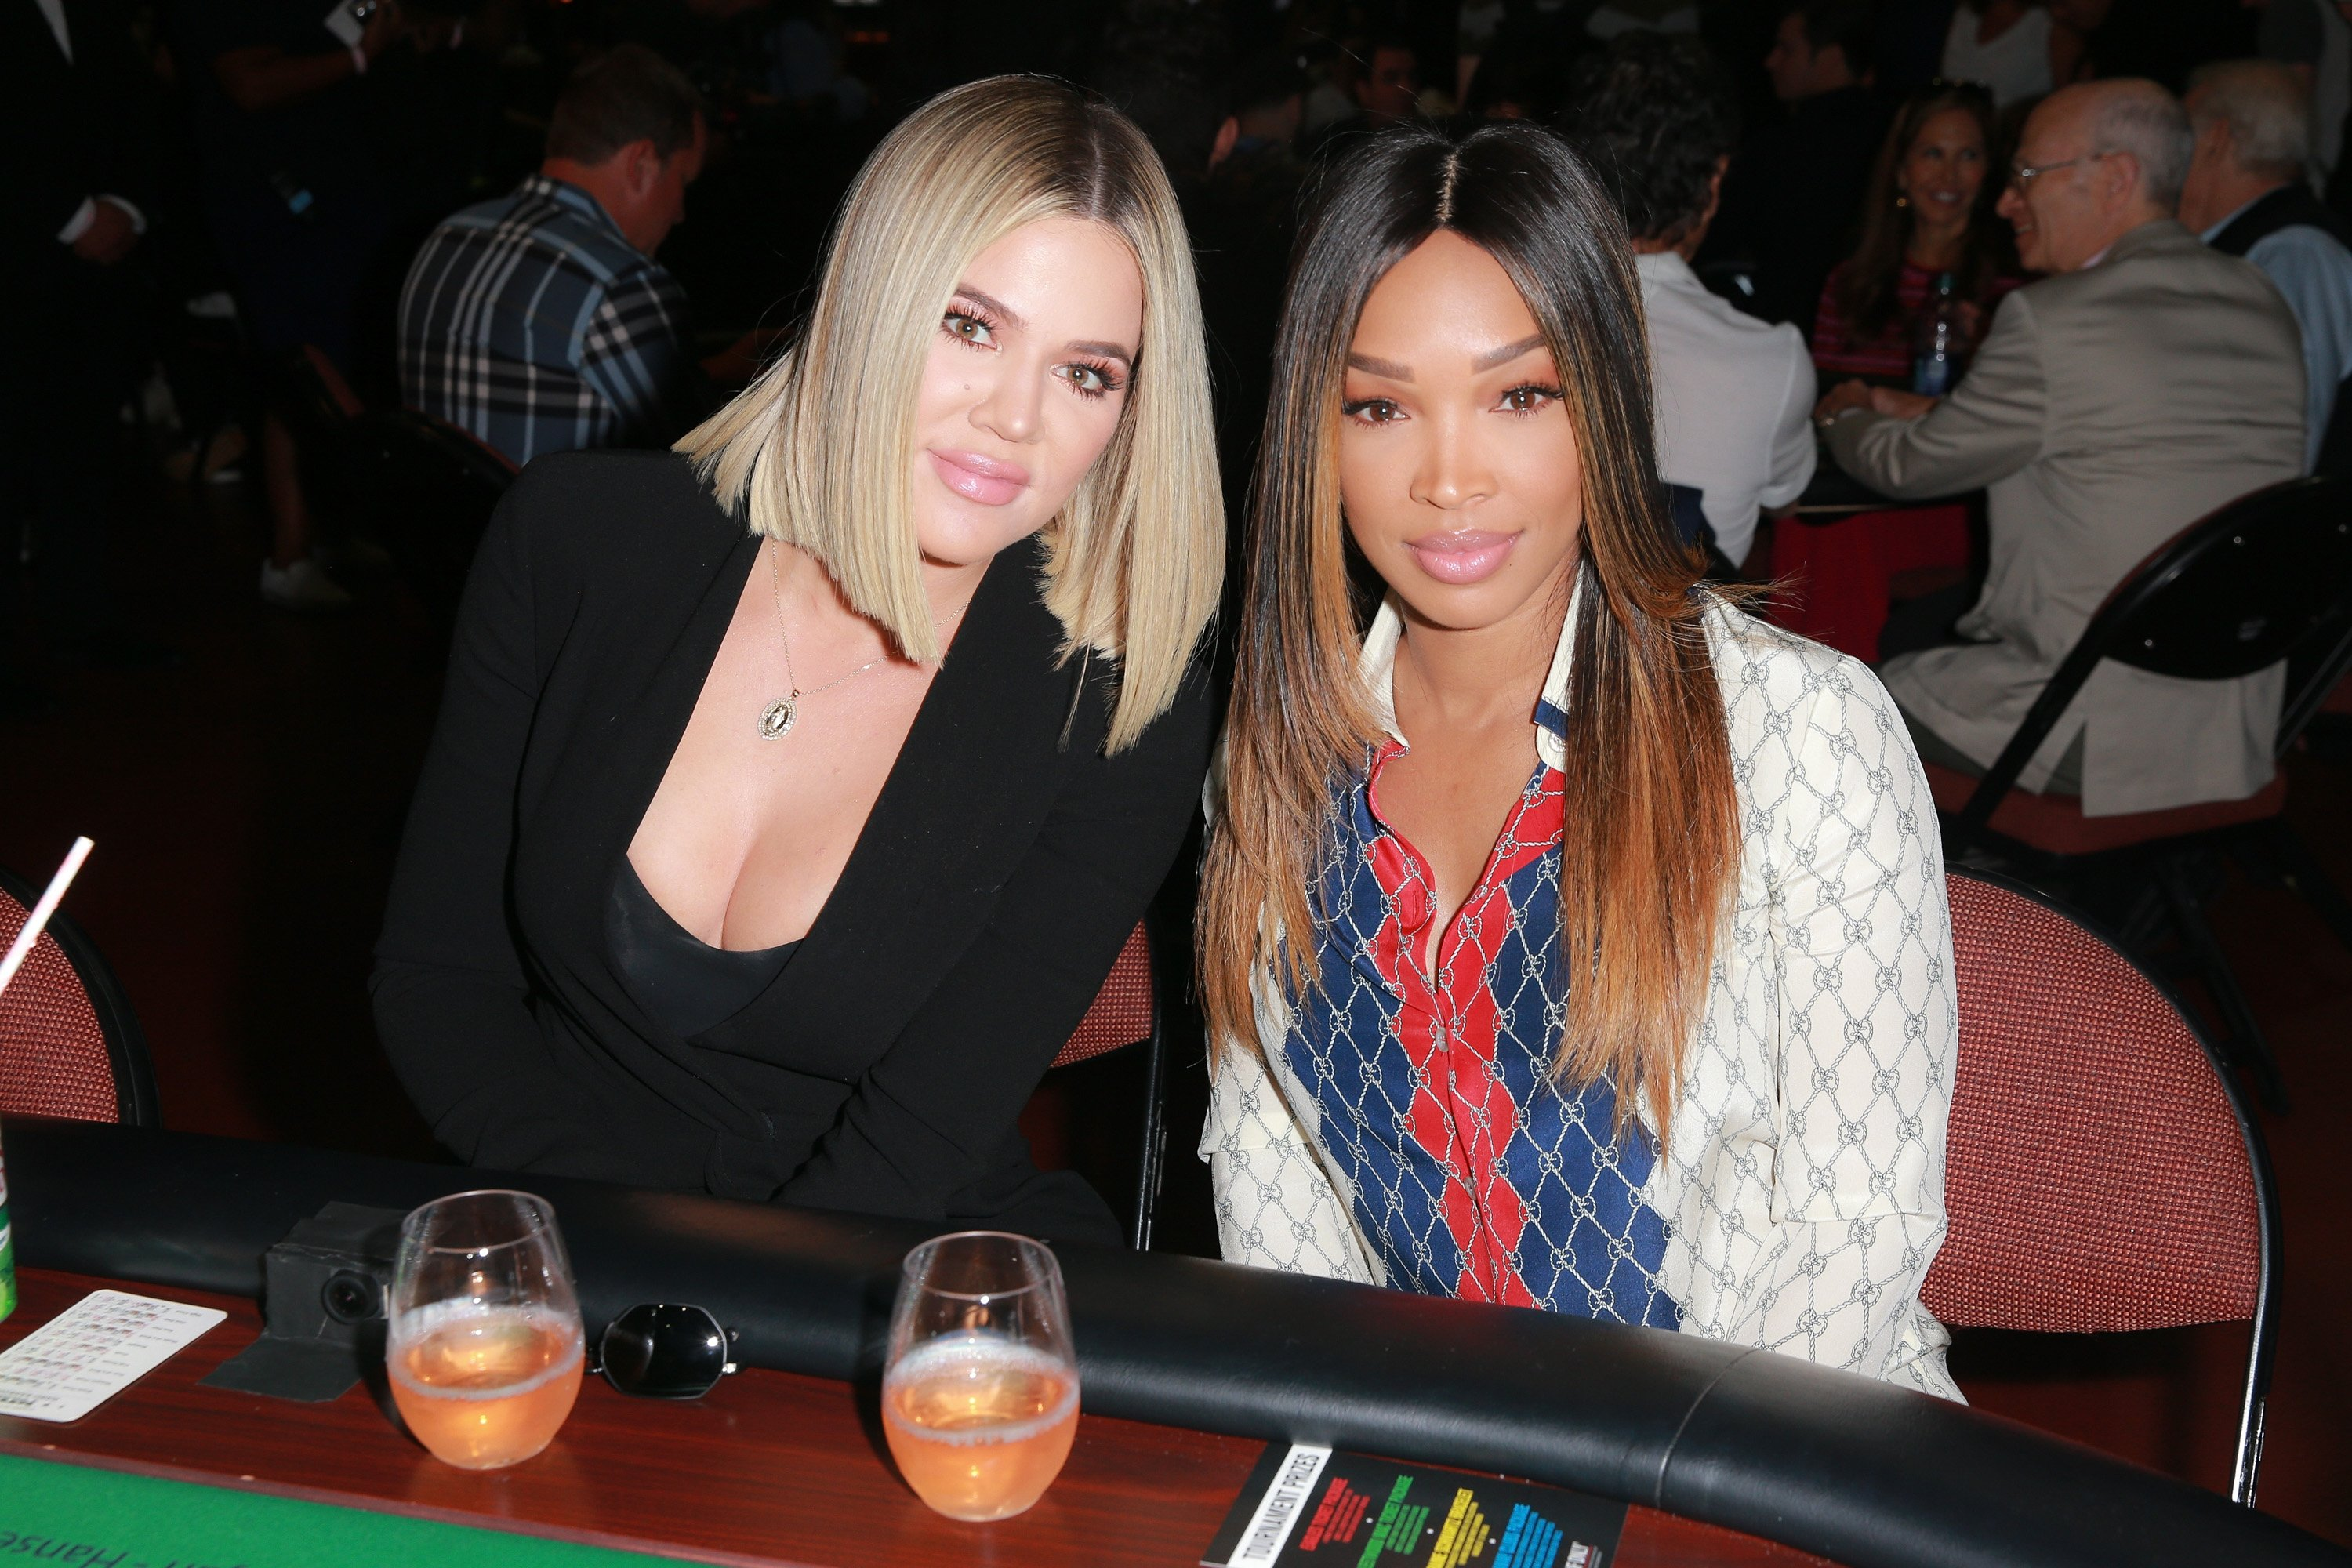 Khloe Kardashian and Malika Haqq at a charity poker tournament at The Forum on July 29, 2018 in Inglewood, California. | Source: Getty Images